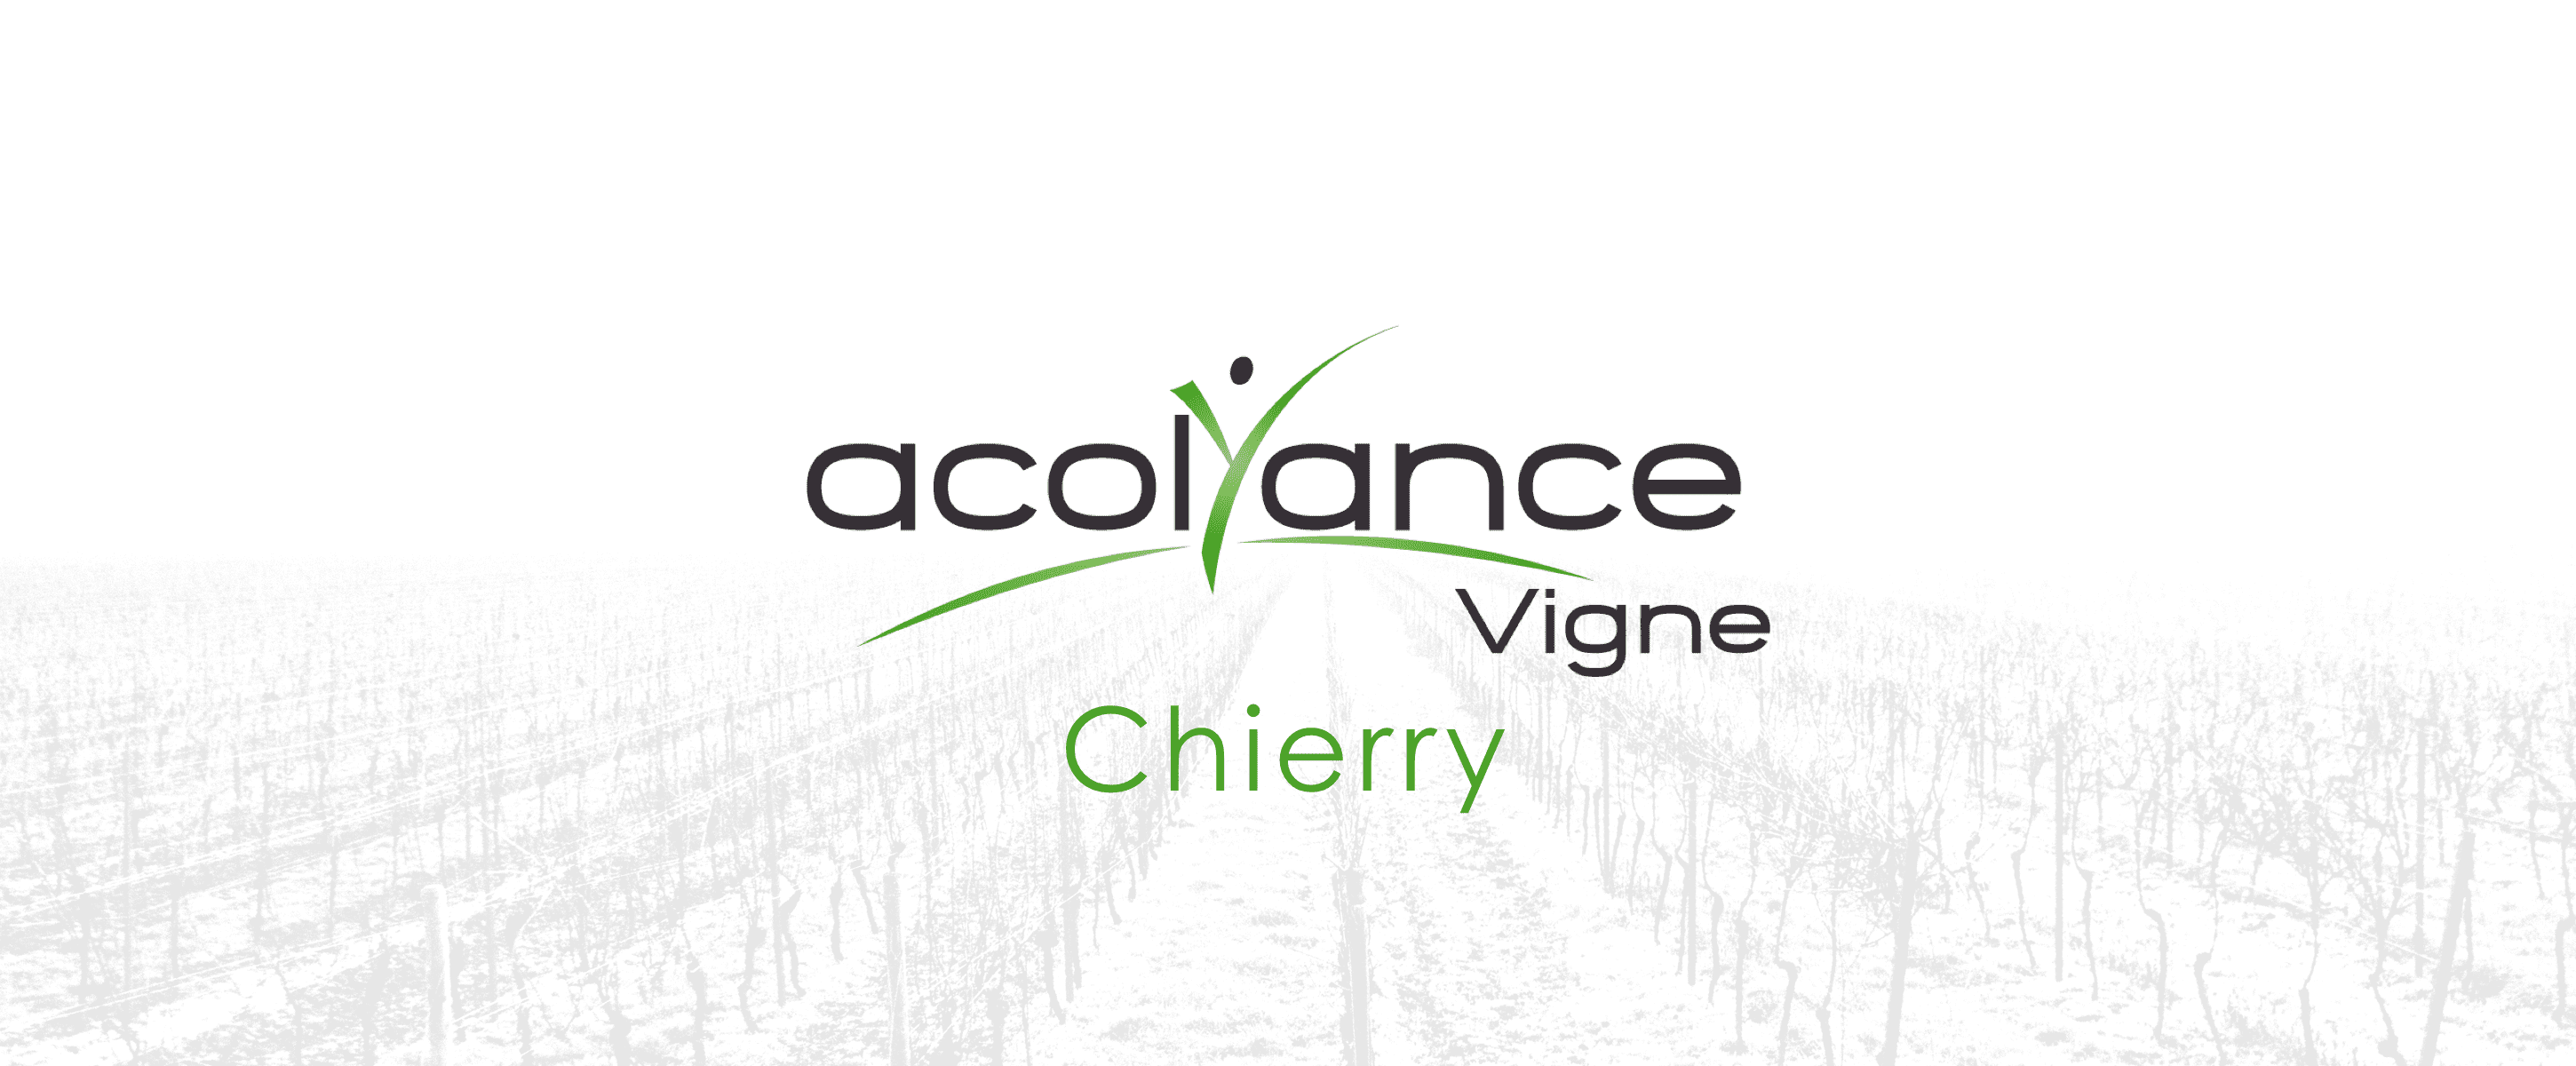 Acolyance Vigne Chierry